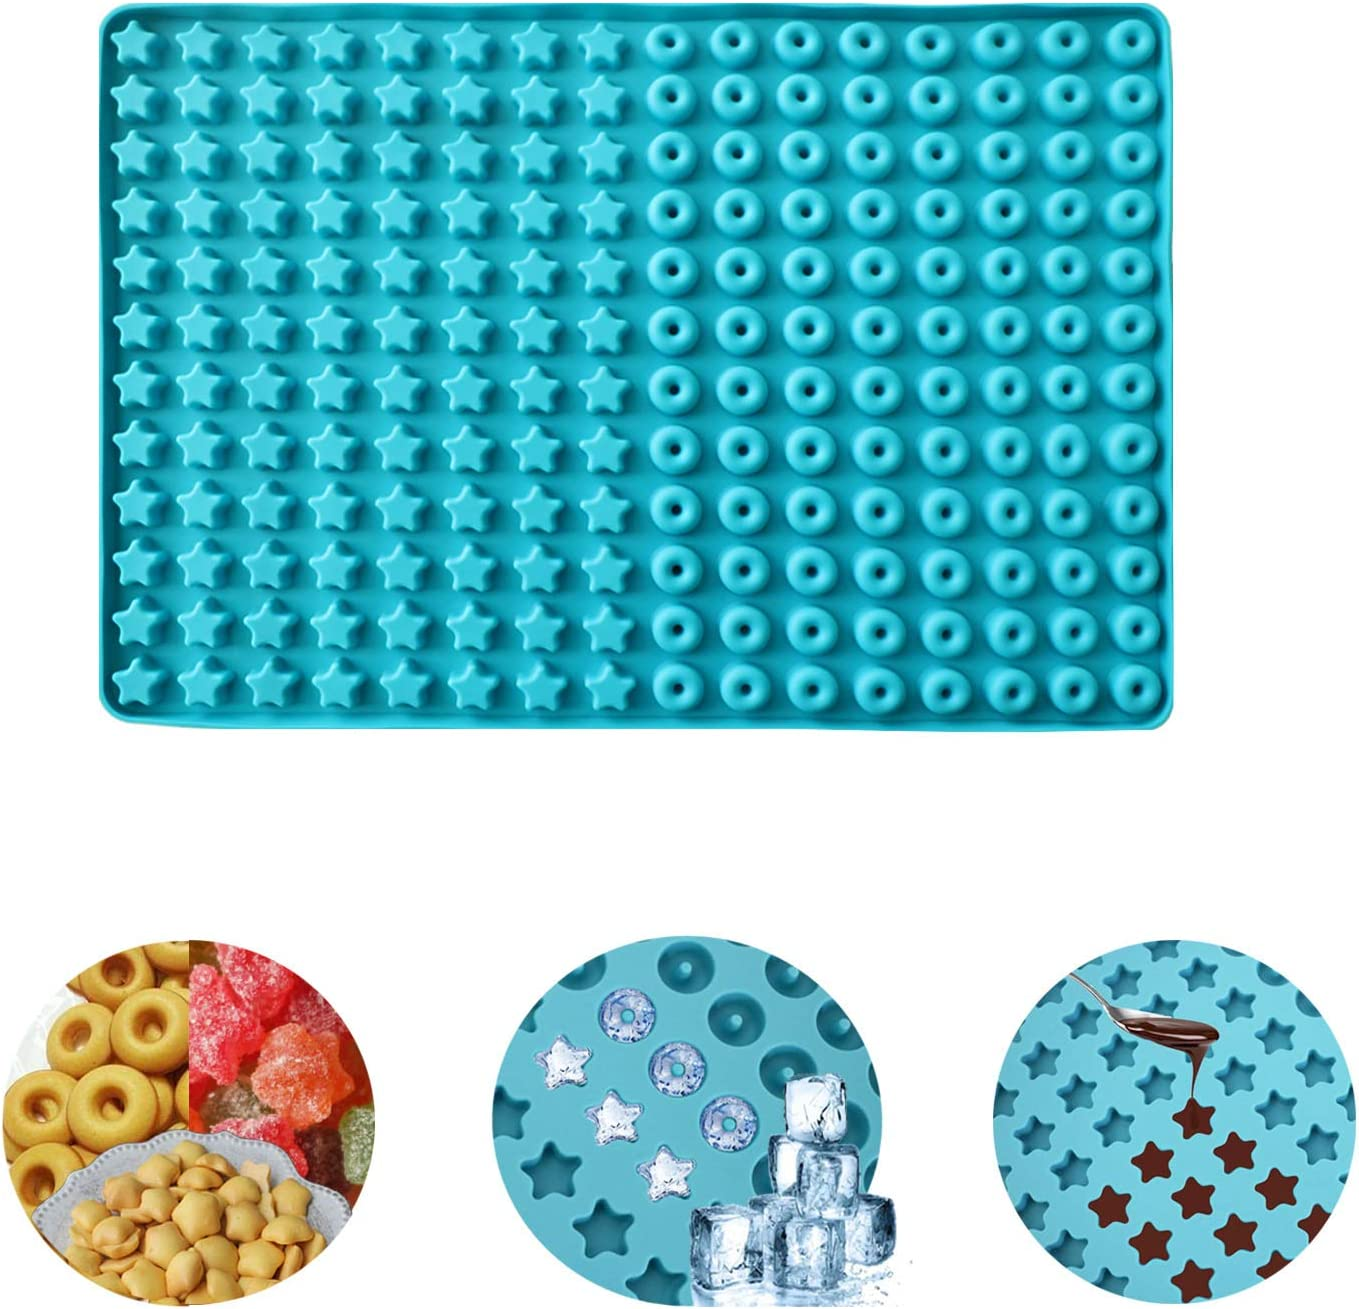 192 Cavity Pet Treats Pan Dog Mini Donuts Star Shaped Silicone Mold, Chocolate Gummy Molds with Nonstick Food Grade Silicone, Silicone Baking Mat Cooking Sheets.